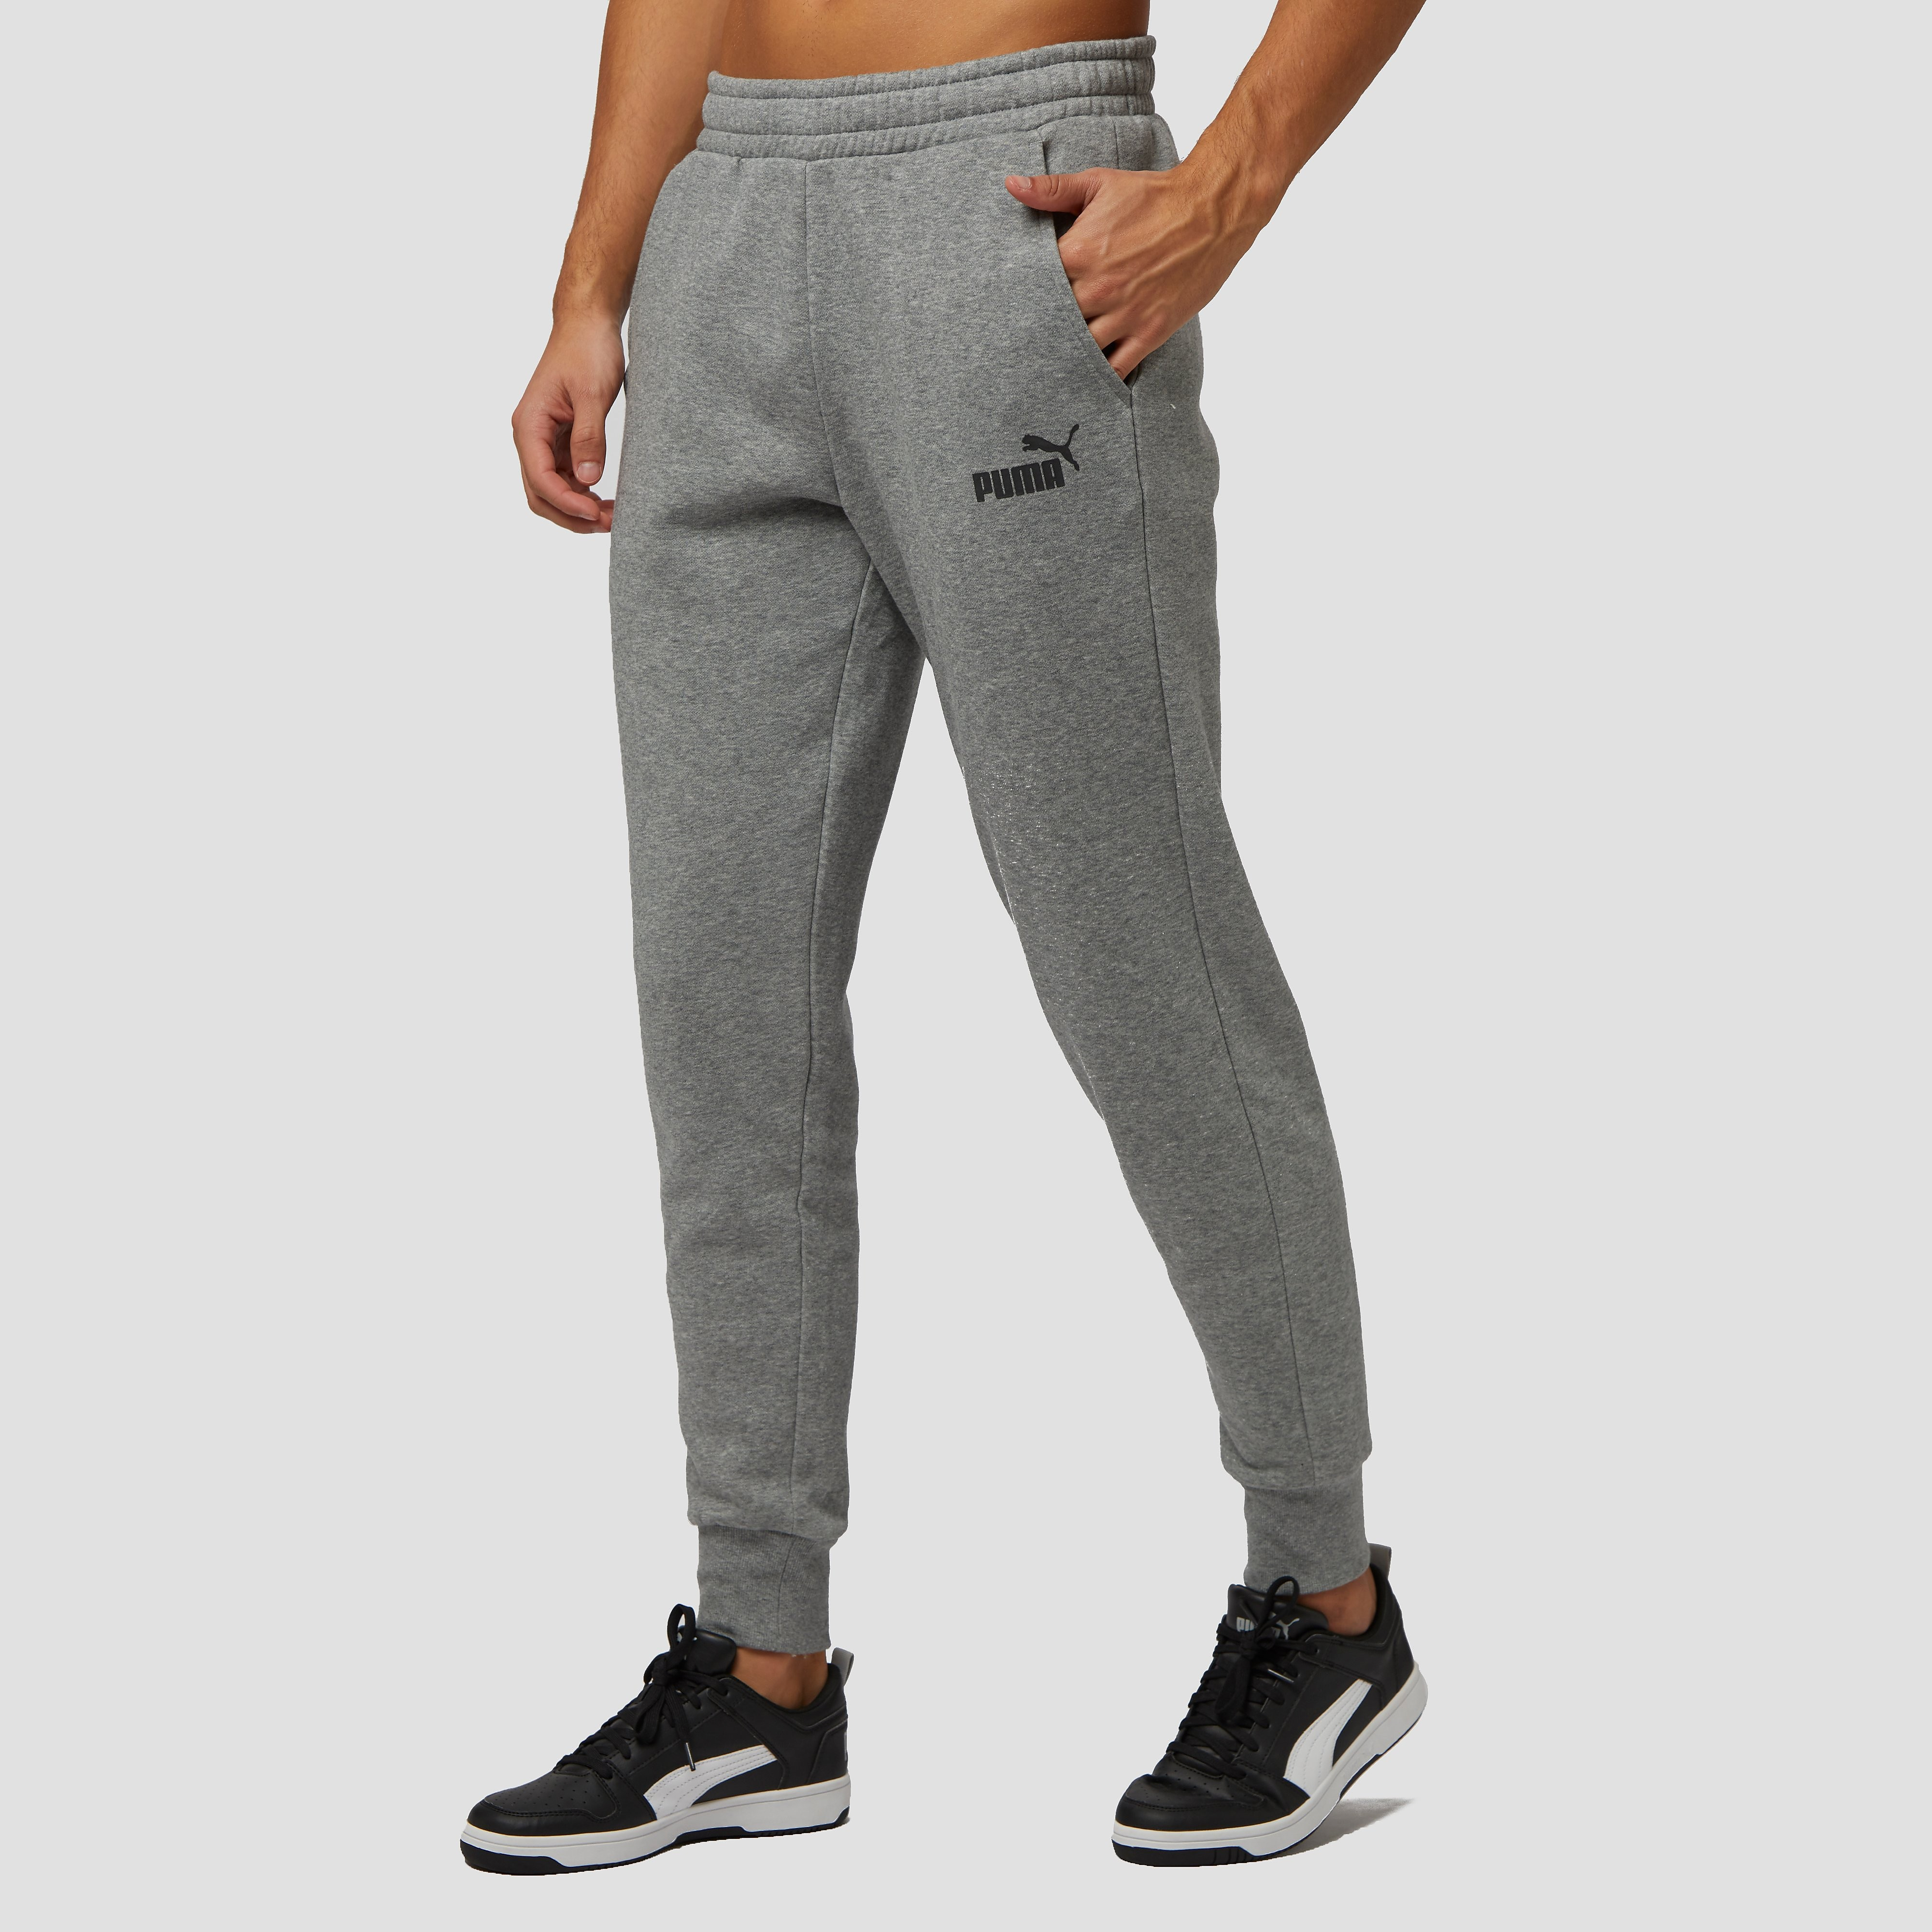 PUMA NO. 1 LOGO JOGGINGBROEK GRIJS HEREN